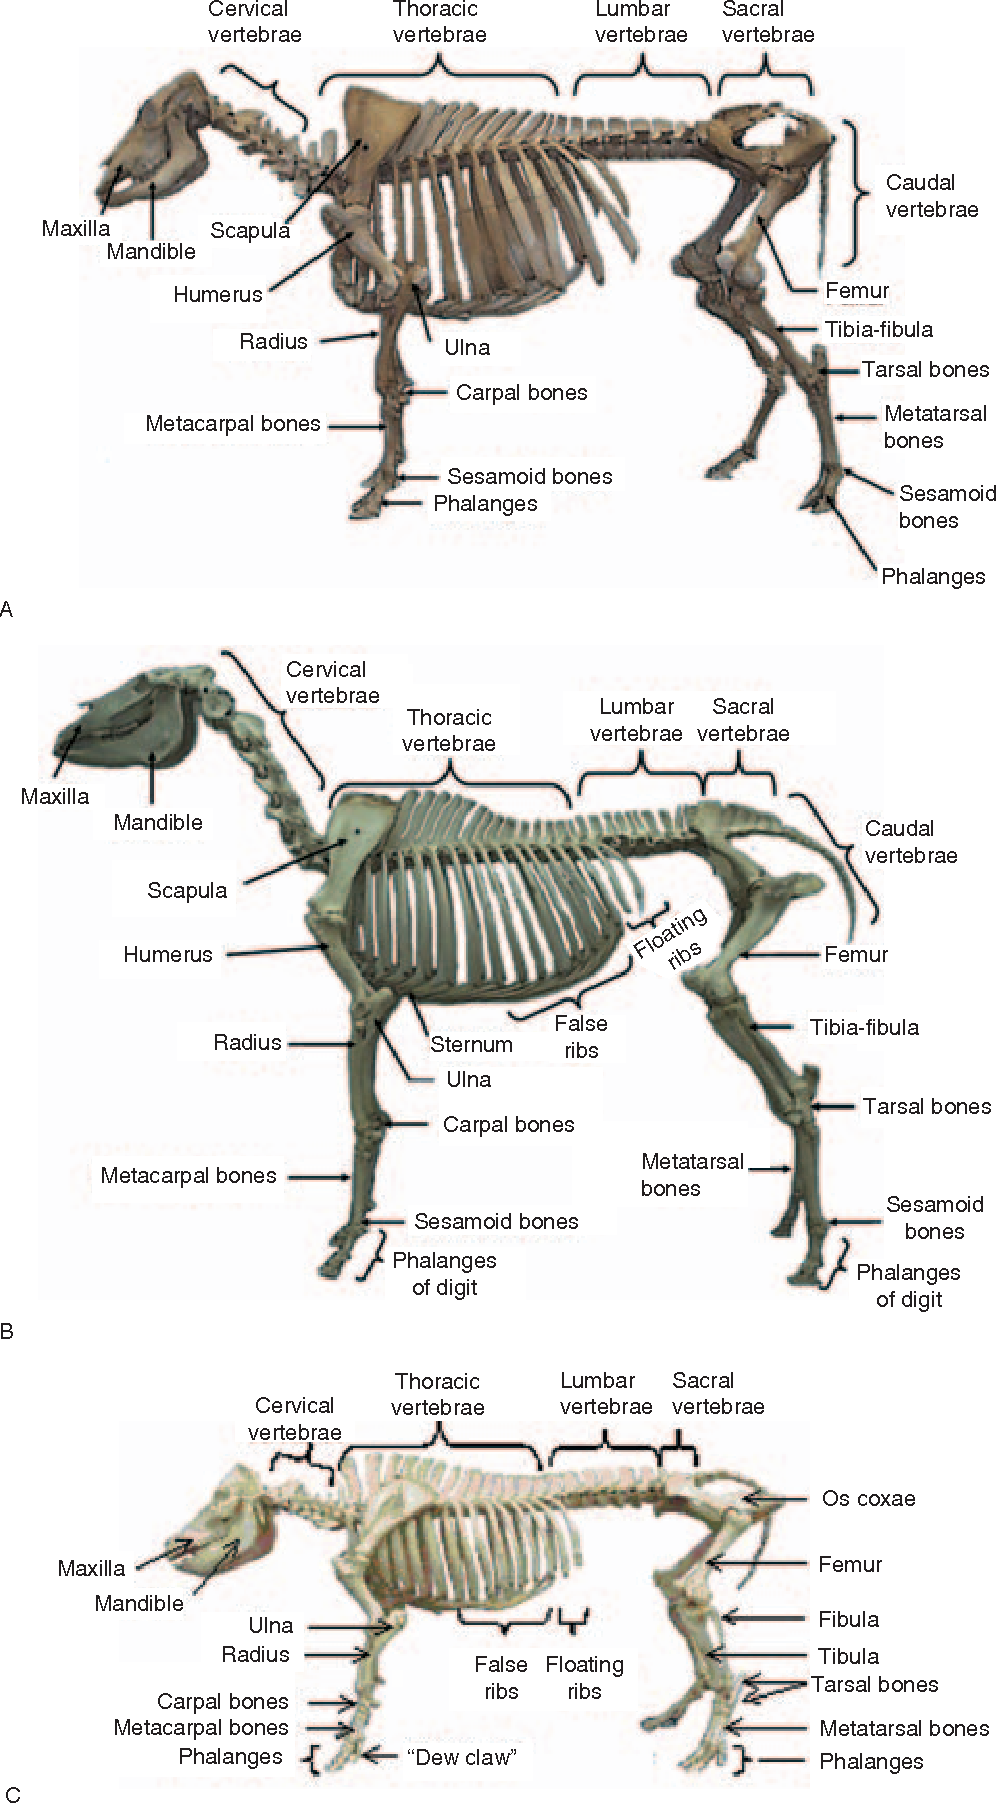 Anatomy and Physiology of Domestic Animals - Semantic Scholar